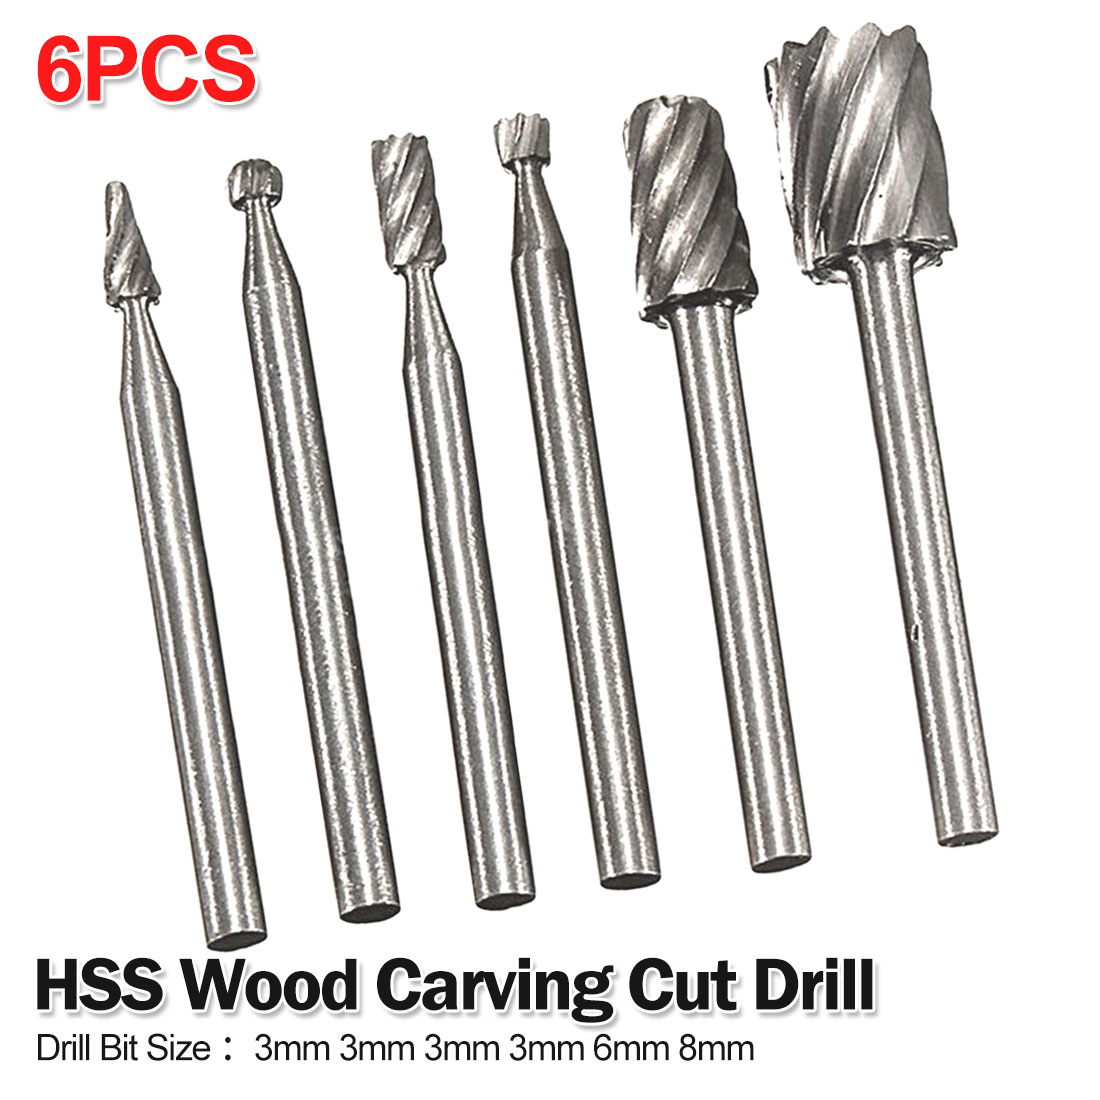 Rotary Tool 6pcs HSS Drill Bit Set Cutting Routing Grinding Bit Milling Cutter For Woodworking/Plastic 3mm 3mm 3mm 3mm 6mm 8mm